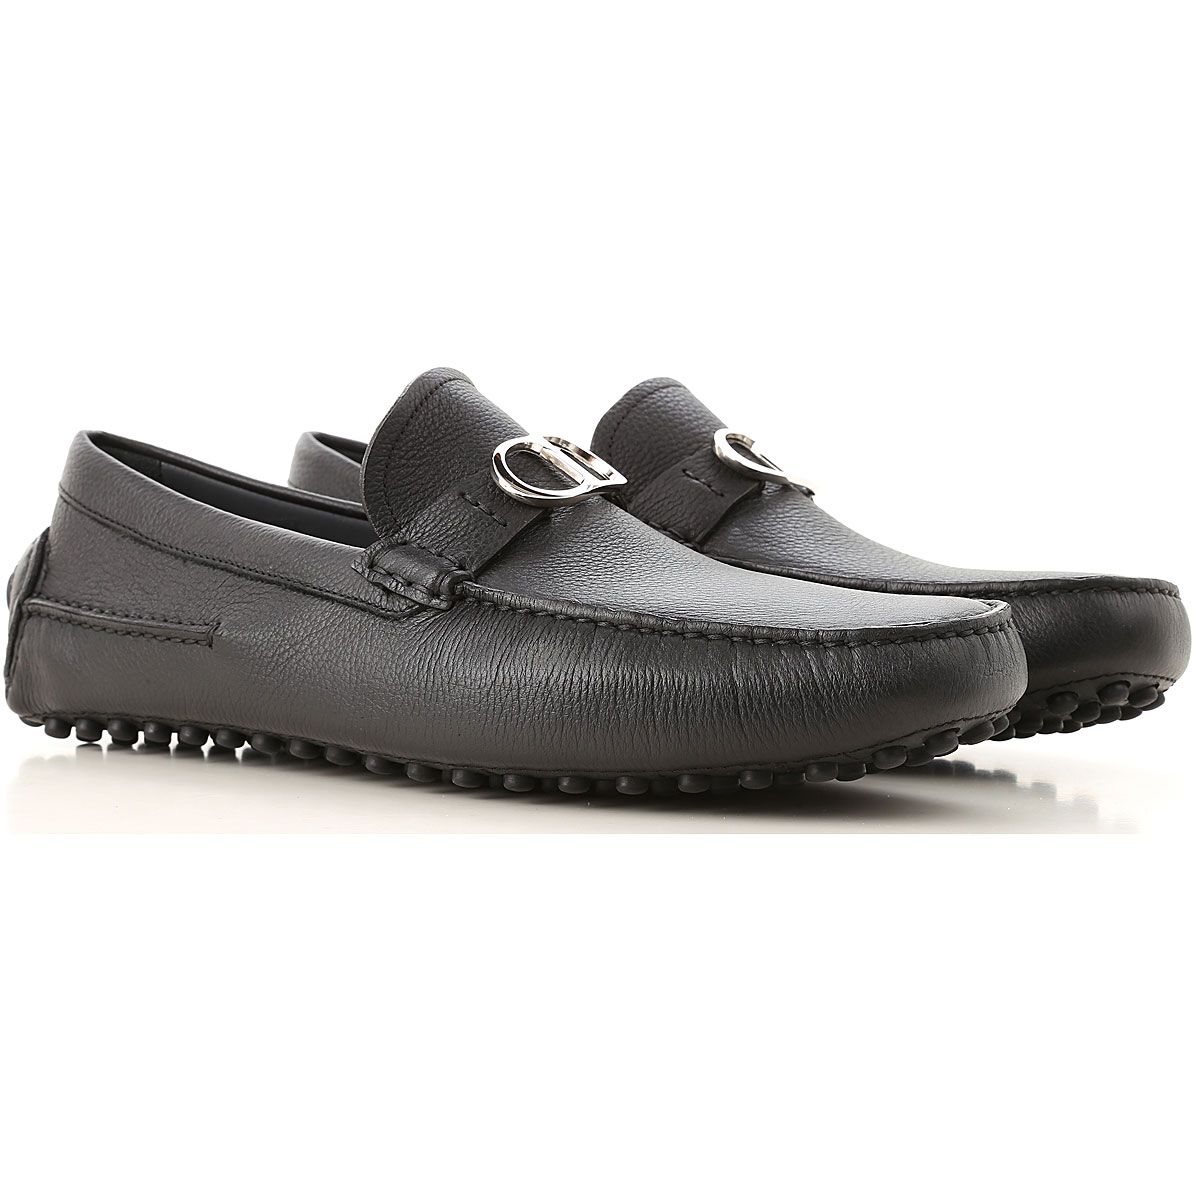 Image of Christian Dior Loafers for Men, Black, Leather, 2017, 7.5 9